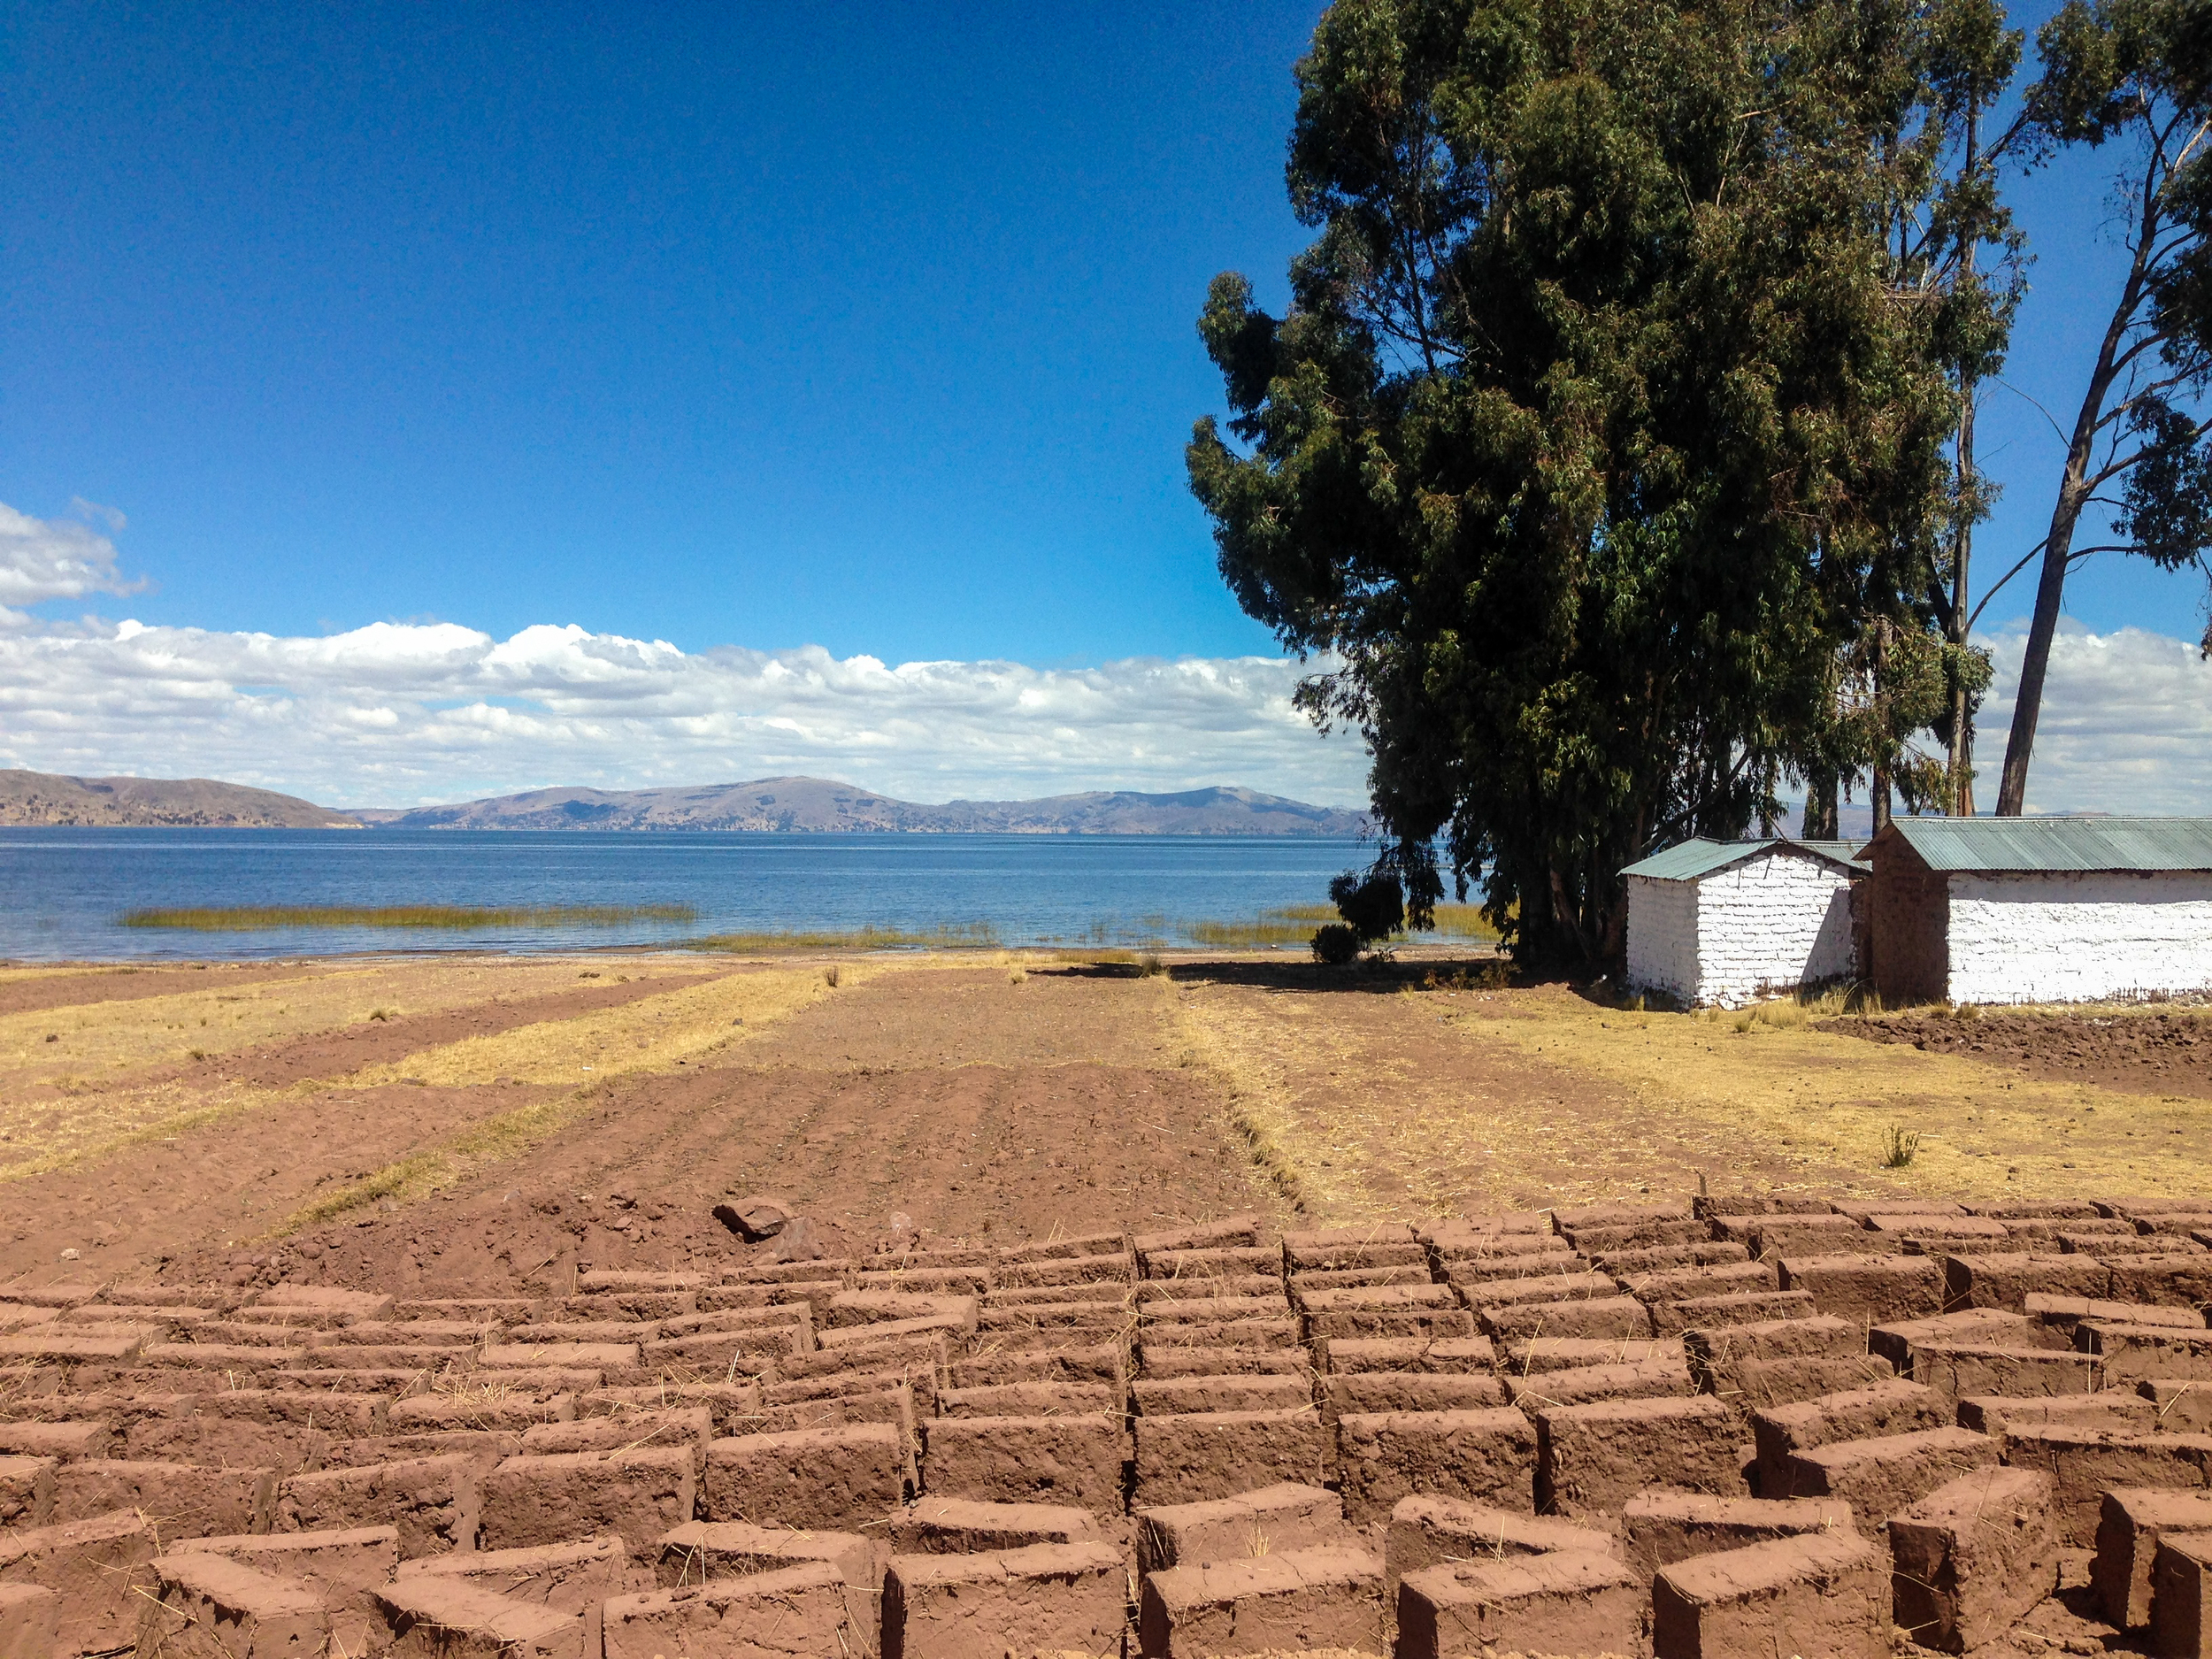 Adobe bricks being dried in the sun at one of the places we pulled over to let someone out after departing Capachicha.